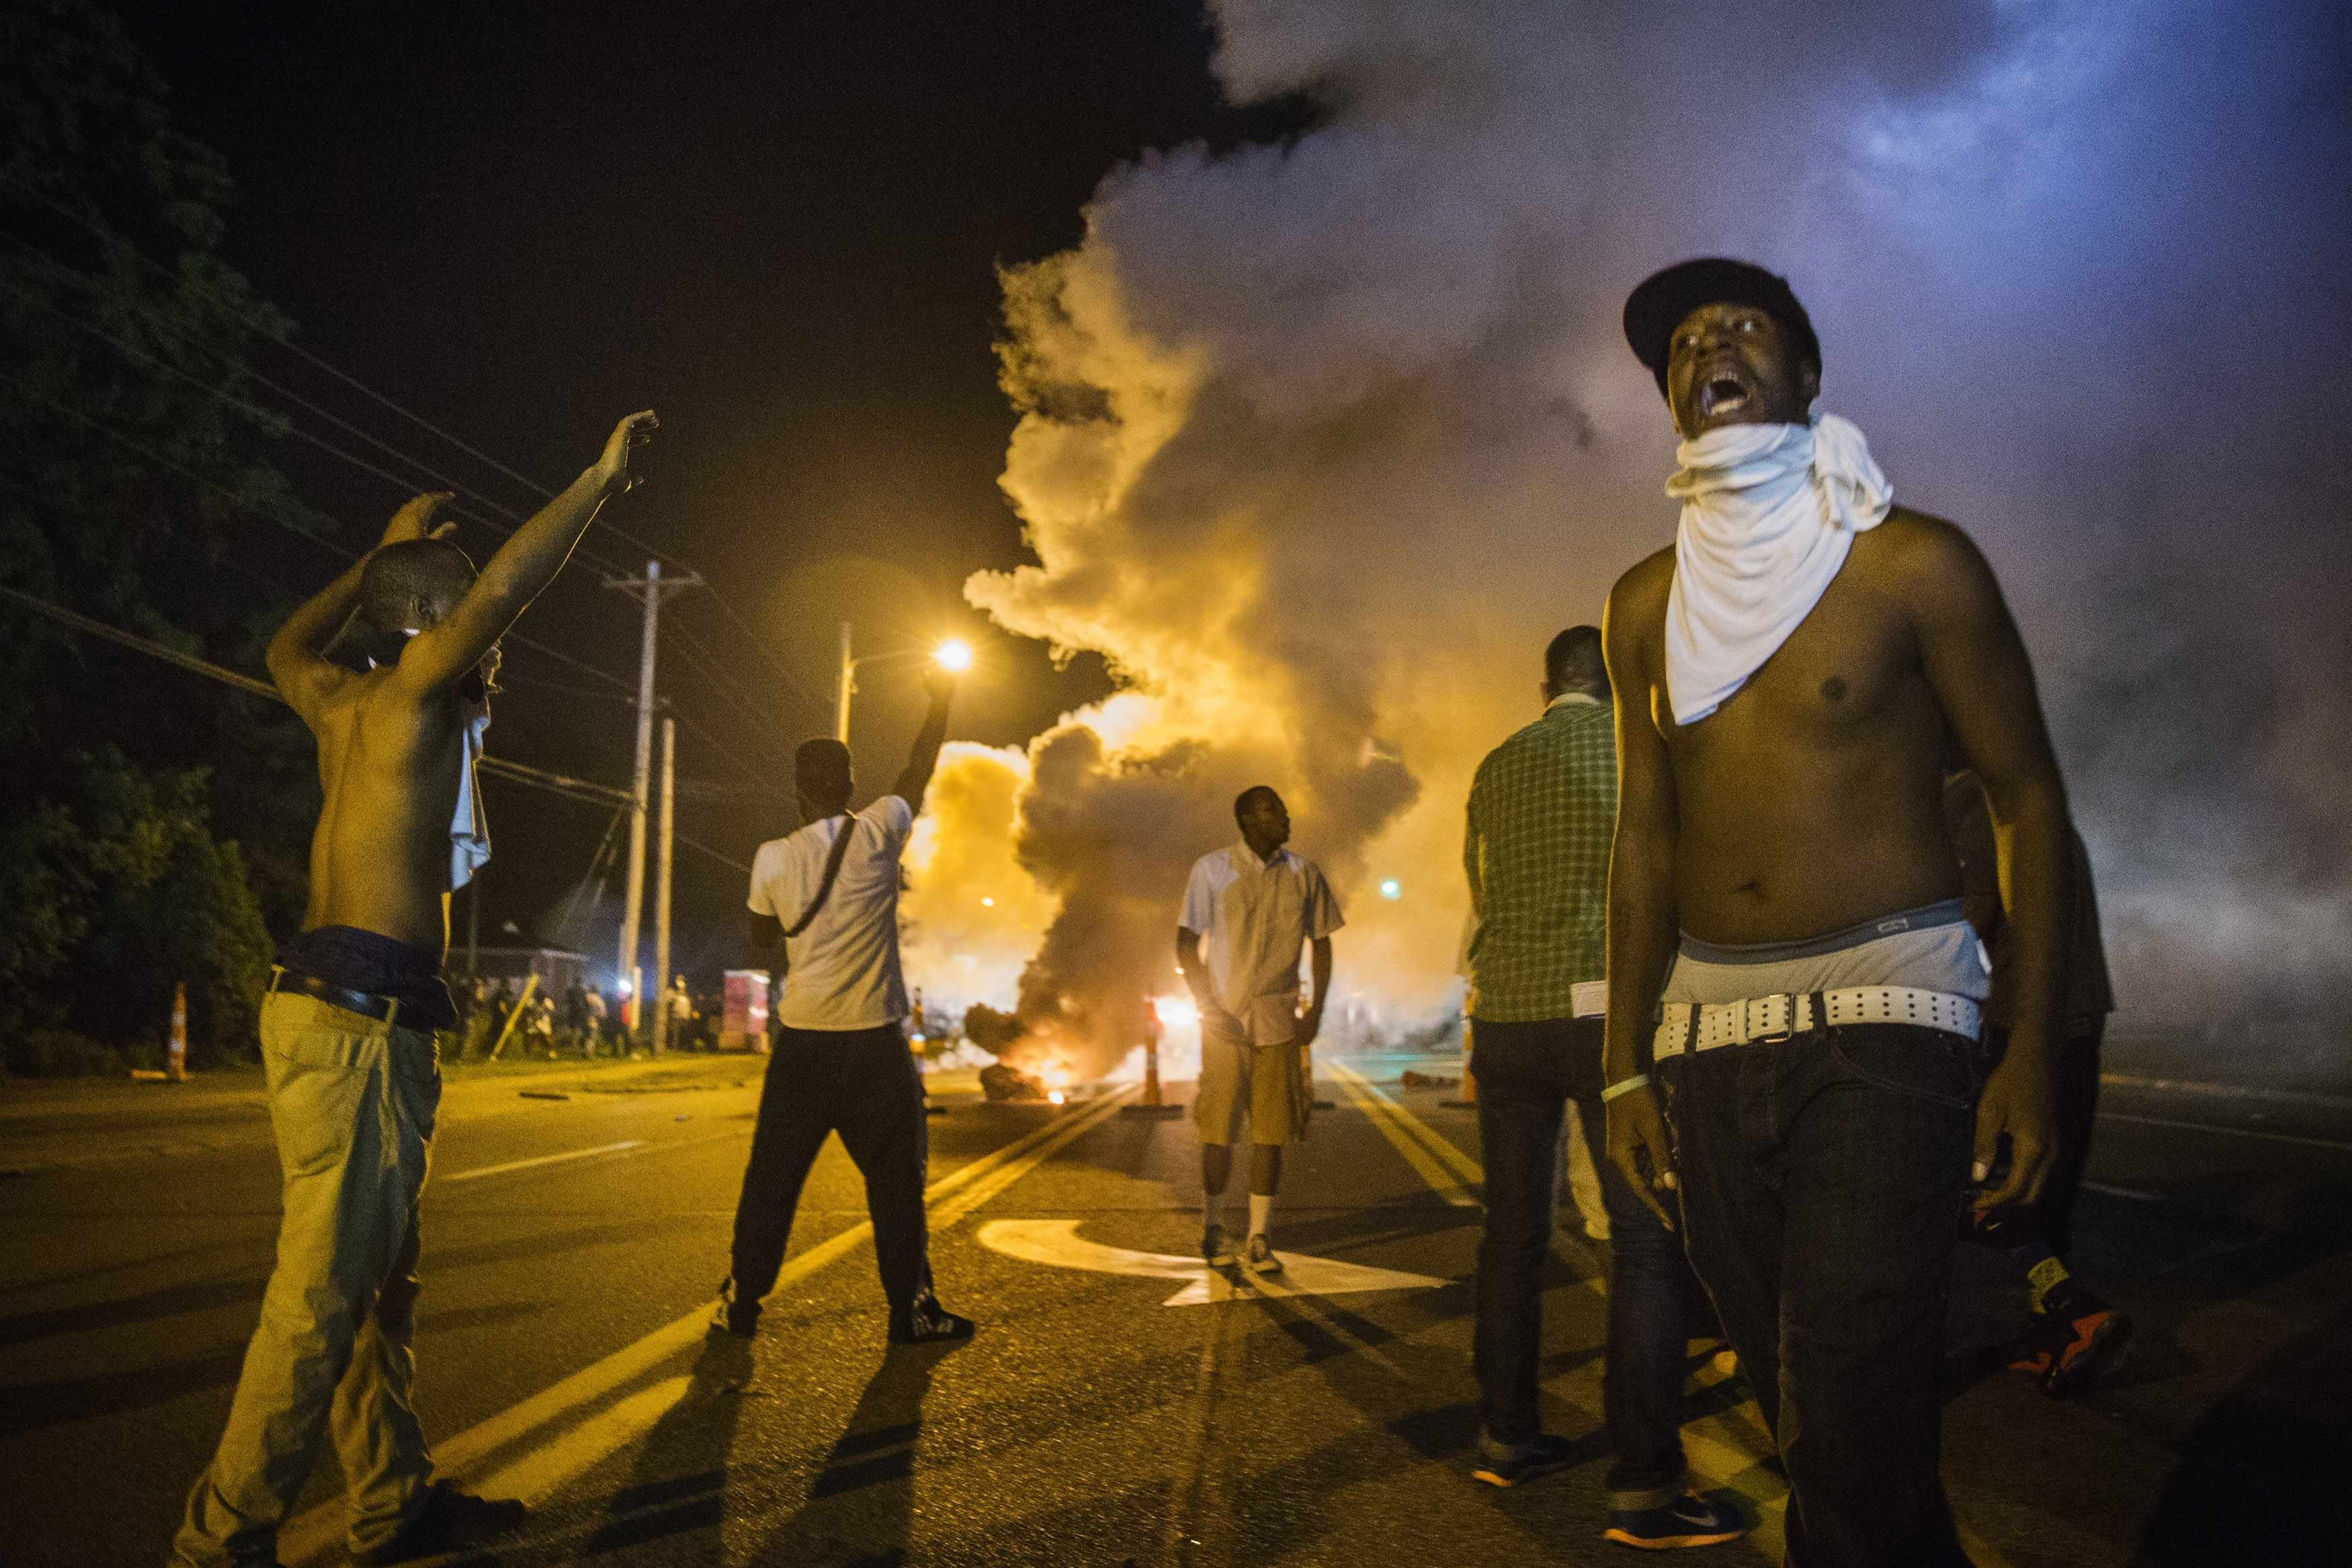 Demonstrators stand in the middle of West Florissant as they react to tear gas fired by police during ongoing protests in reaction to the shooting of teenager Michael Brown, near Ferguson, Missouri, August 18, 2014.